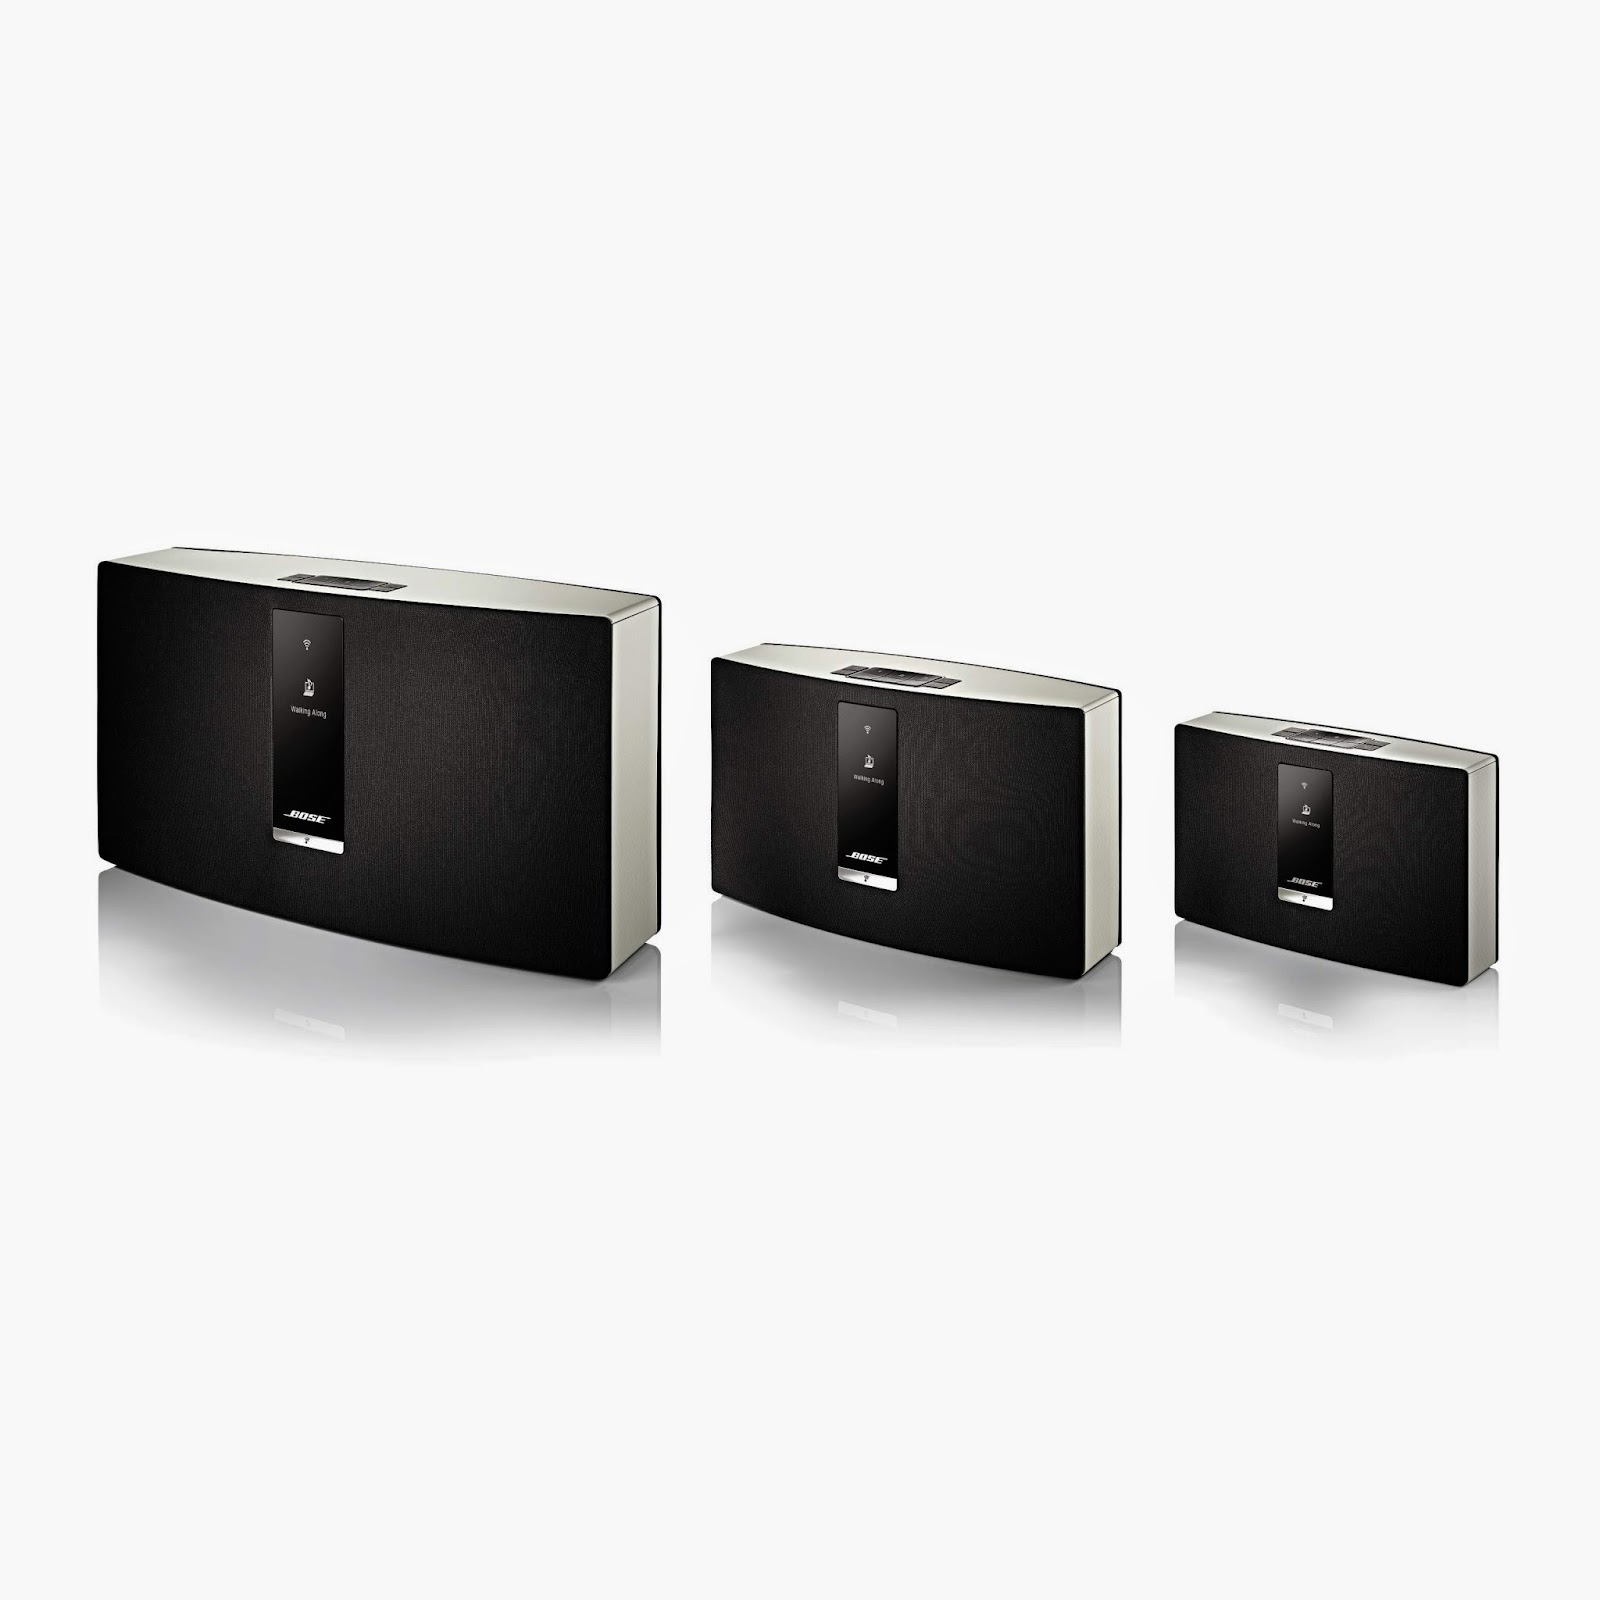 bose unveils soundtouch wifi music systems the new breed. Black Bedroom Furniture Sets. Home Design Ideas